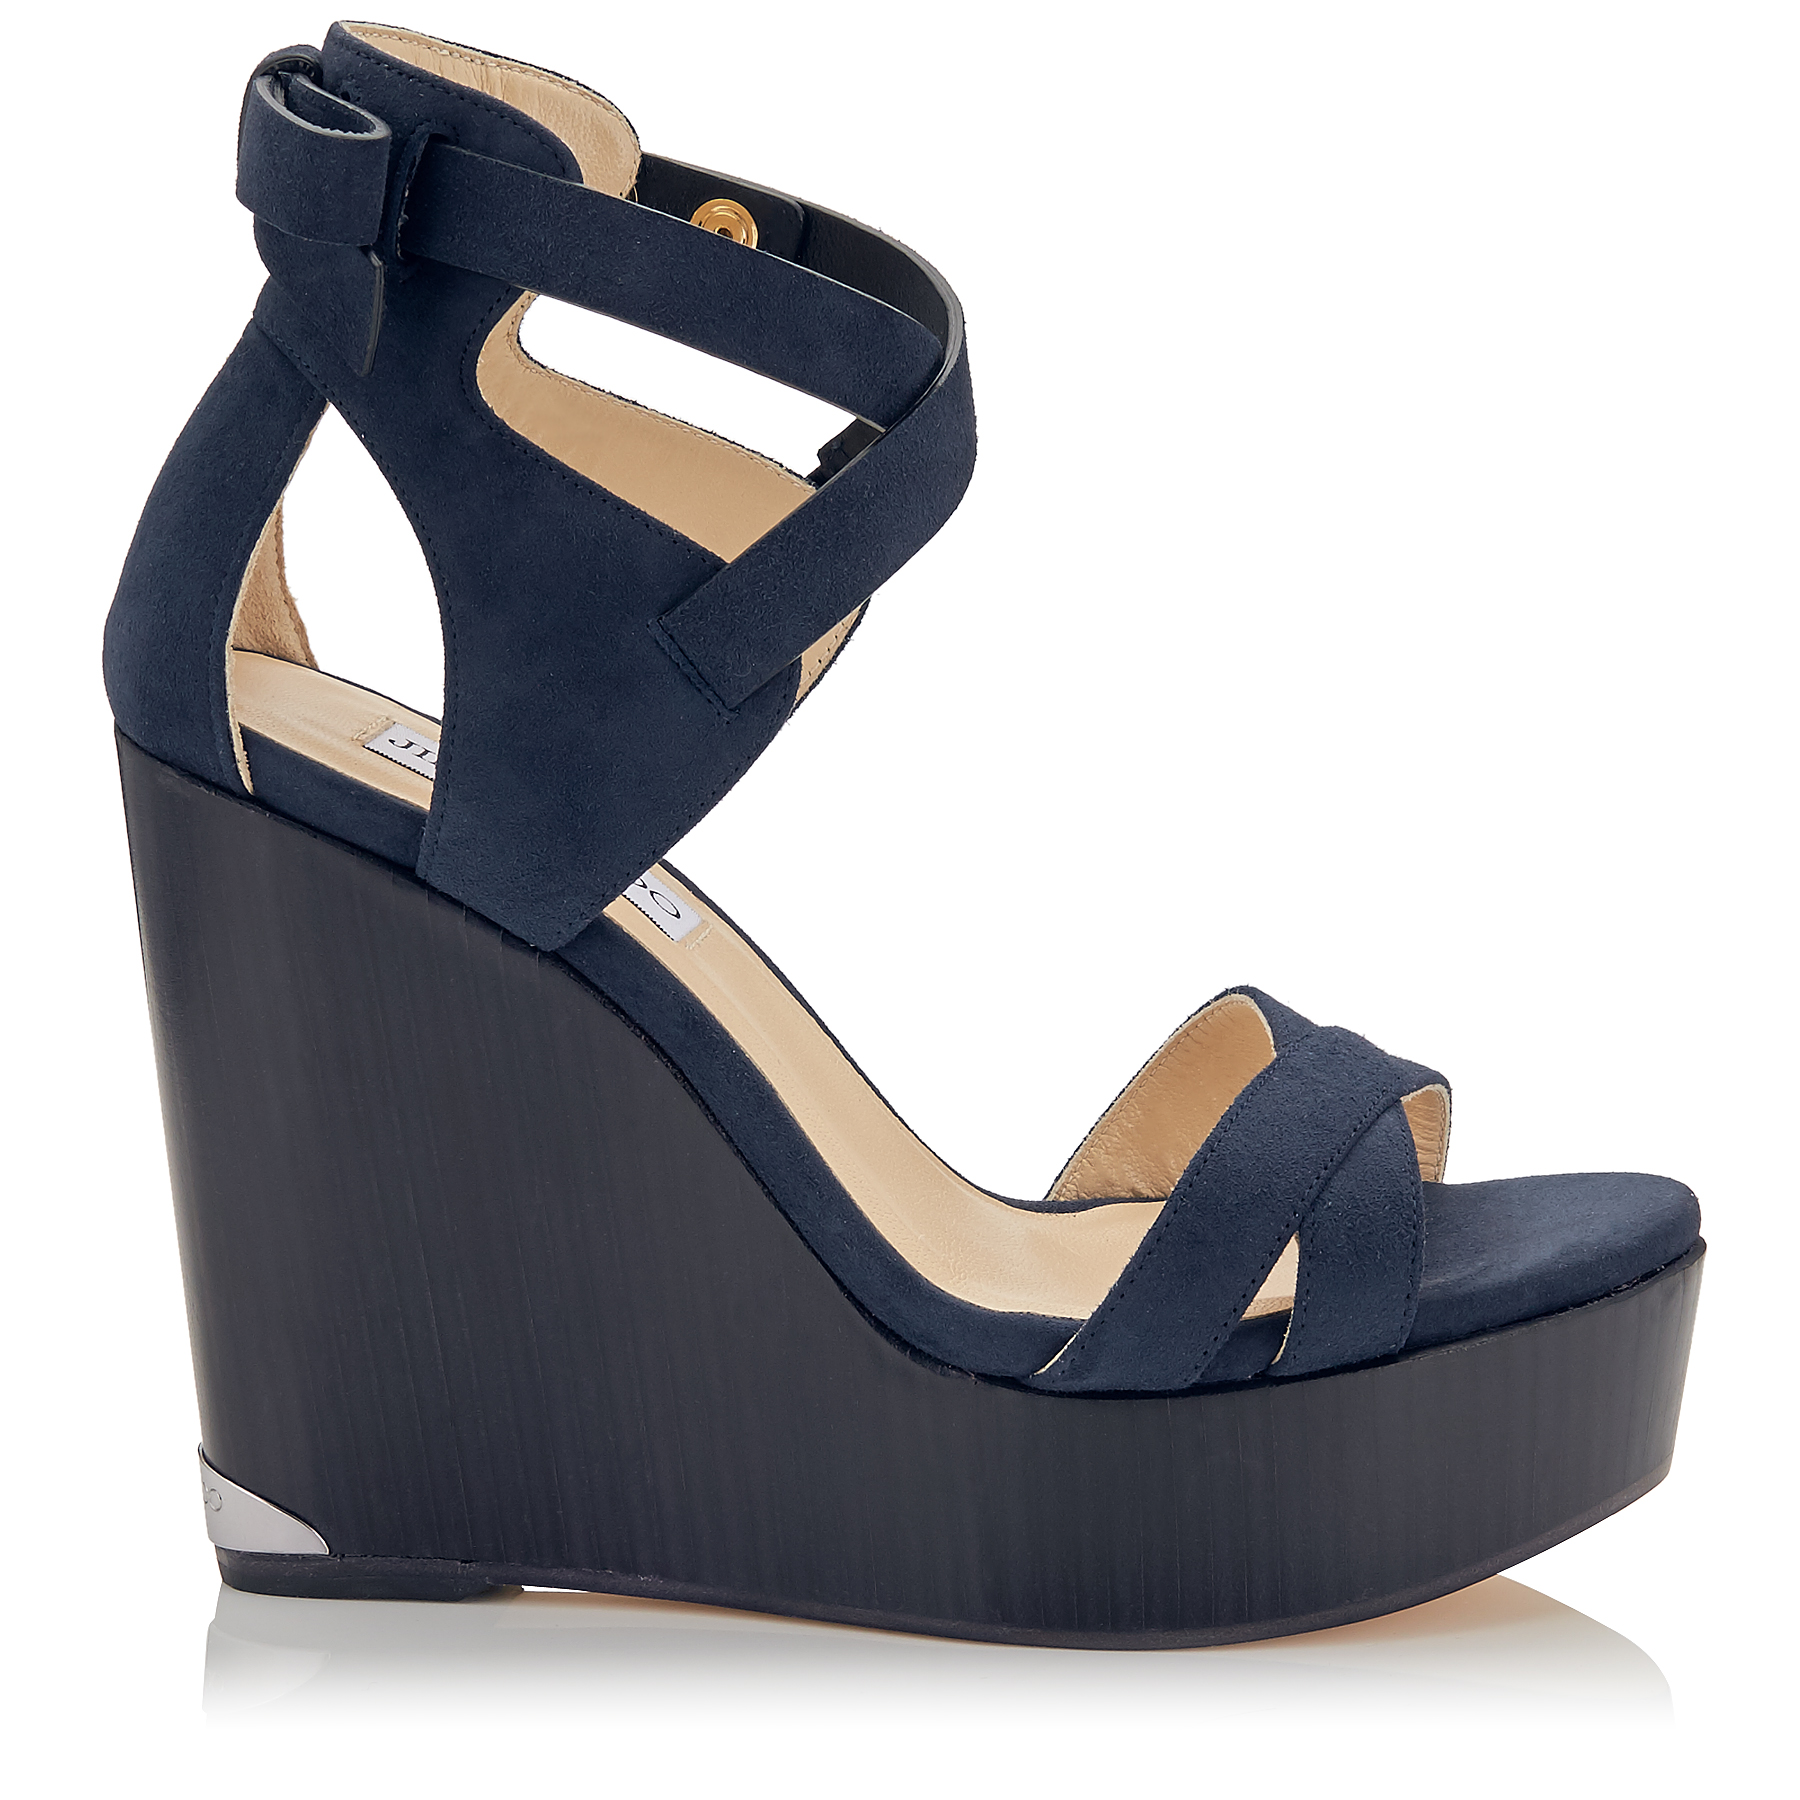 NAOMI 120 Navy Suede Cuoio Covered Wedges